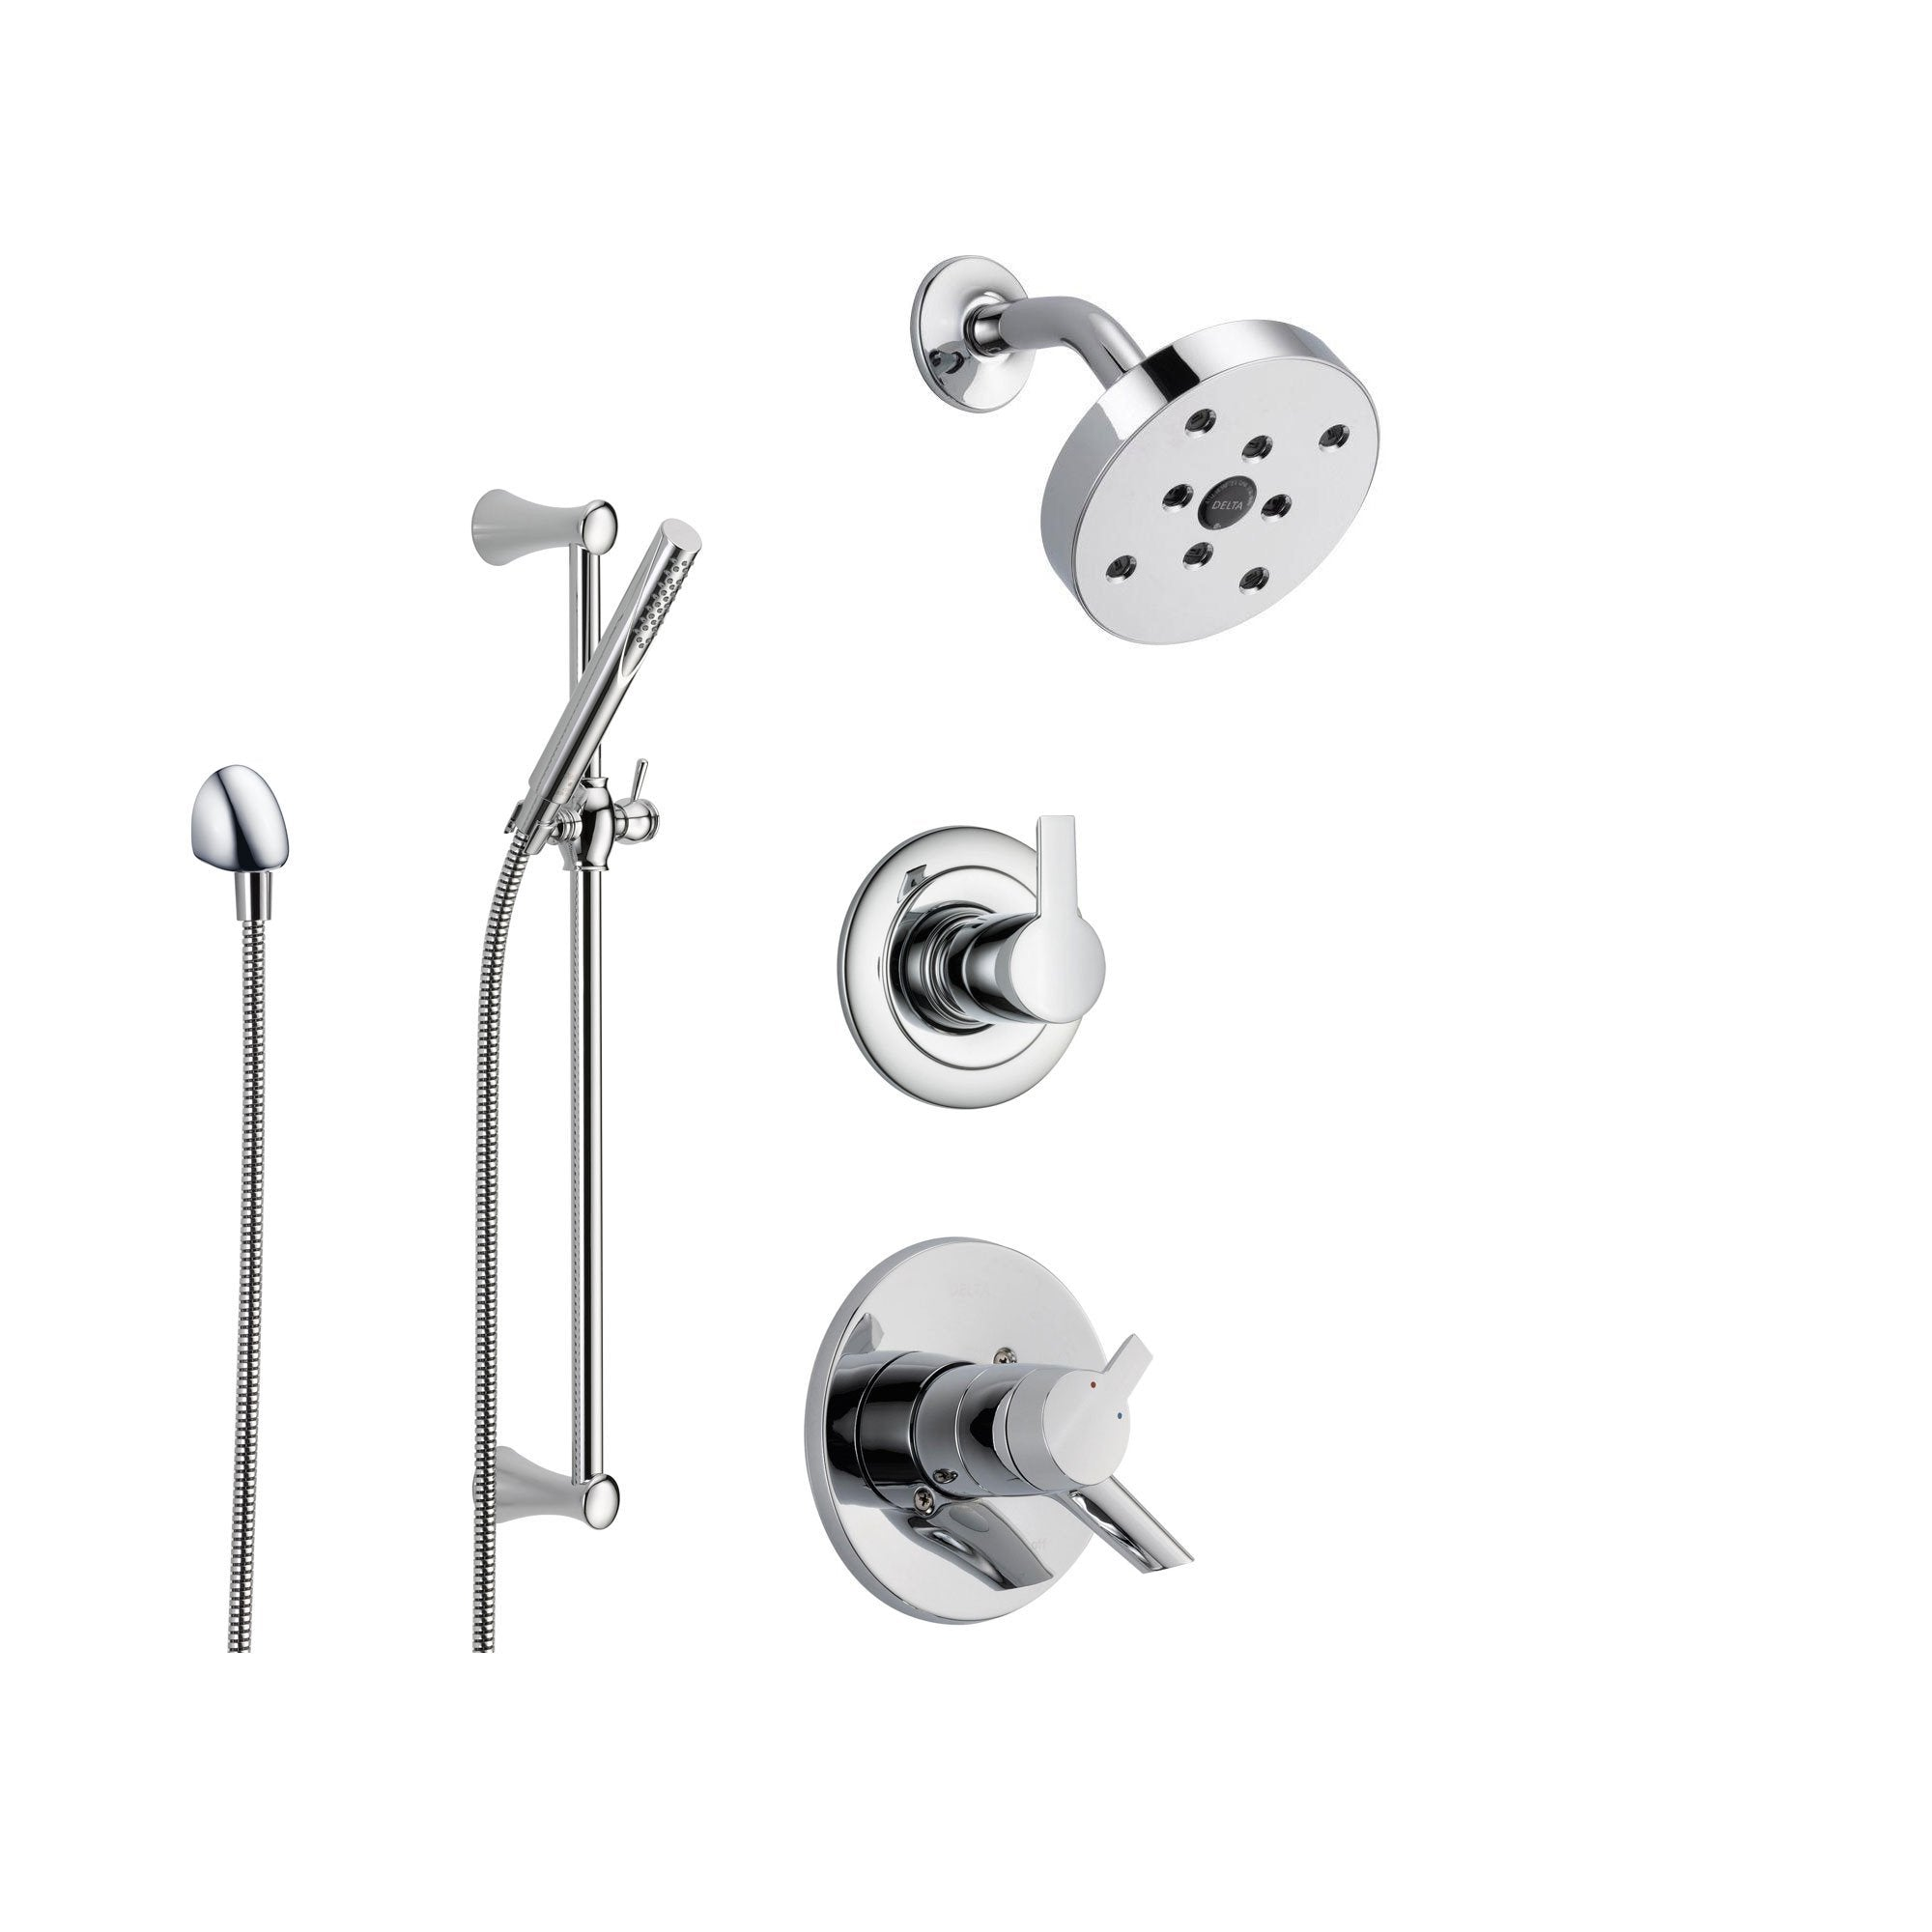 Delta Compel Chrome Shower System with Dual Control Shower Handle, 3-setting Diverter, Modern Round Showerhead, and Handheld Shower Stick SS176184